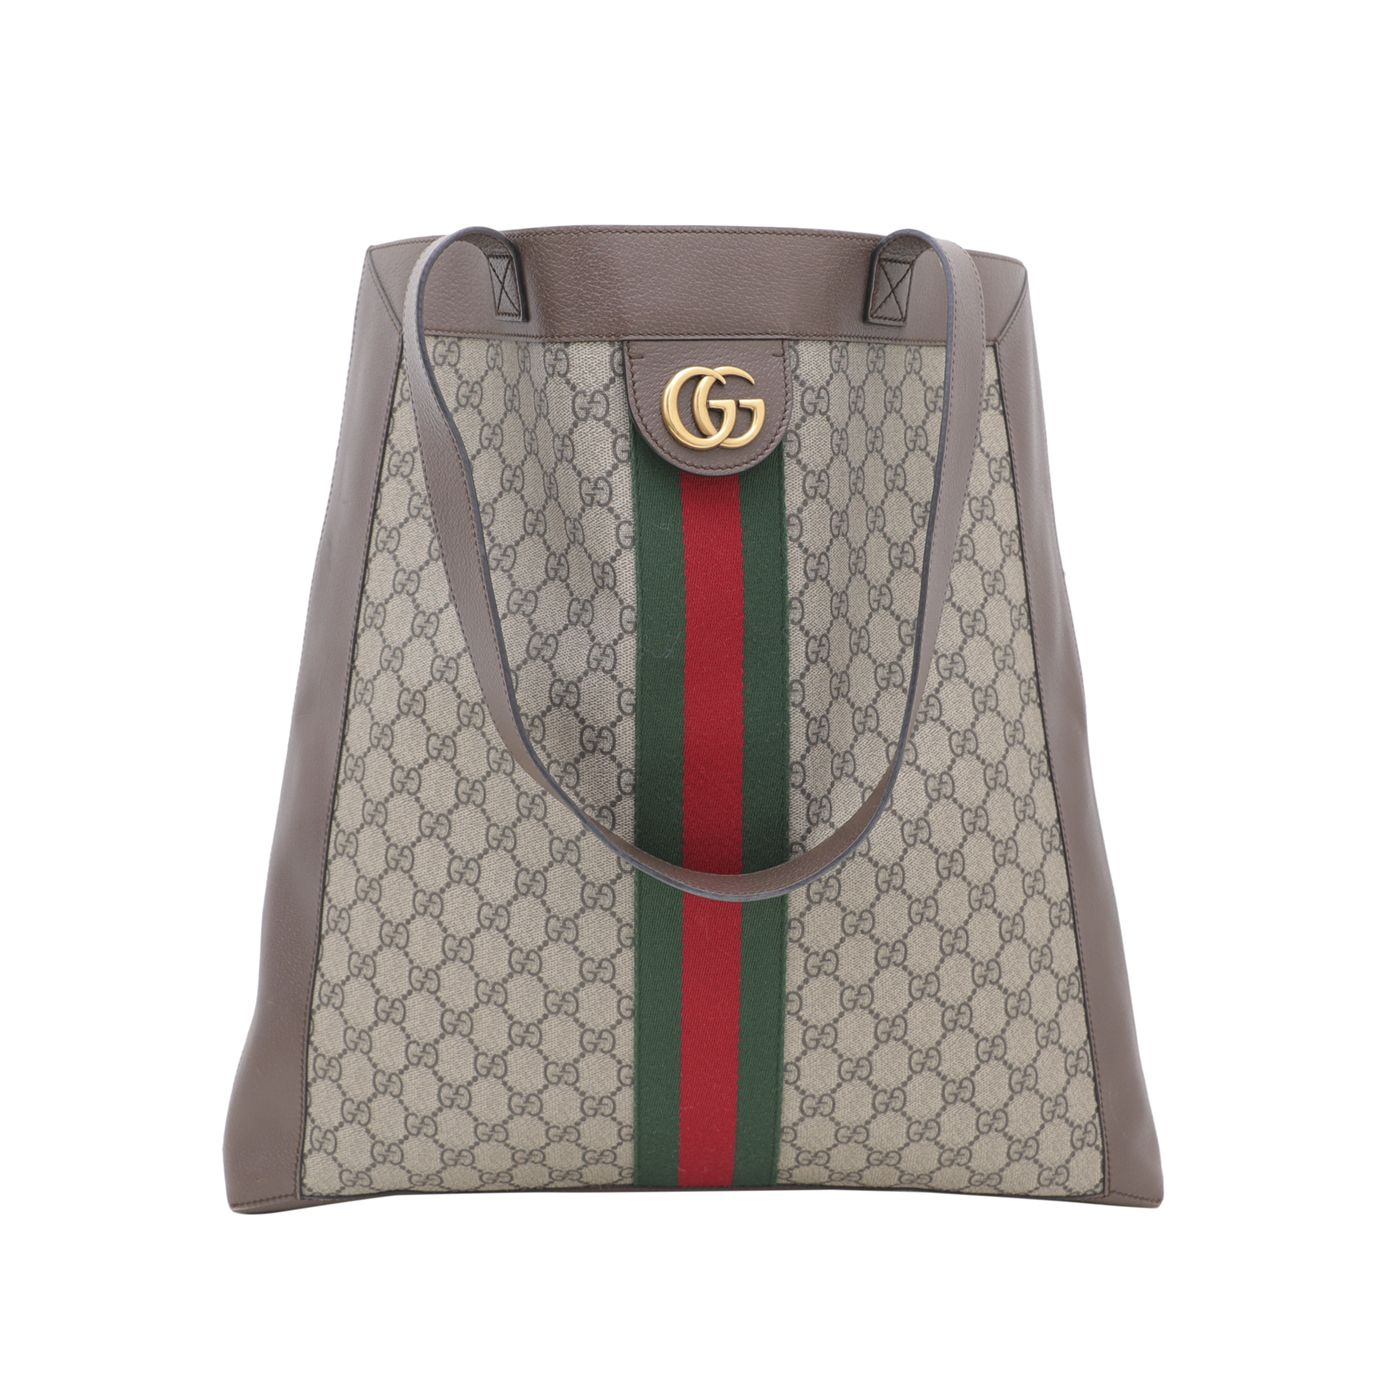 Gucci Tricolor Soft GG Supreme Ophidia Large Tote Bag